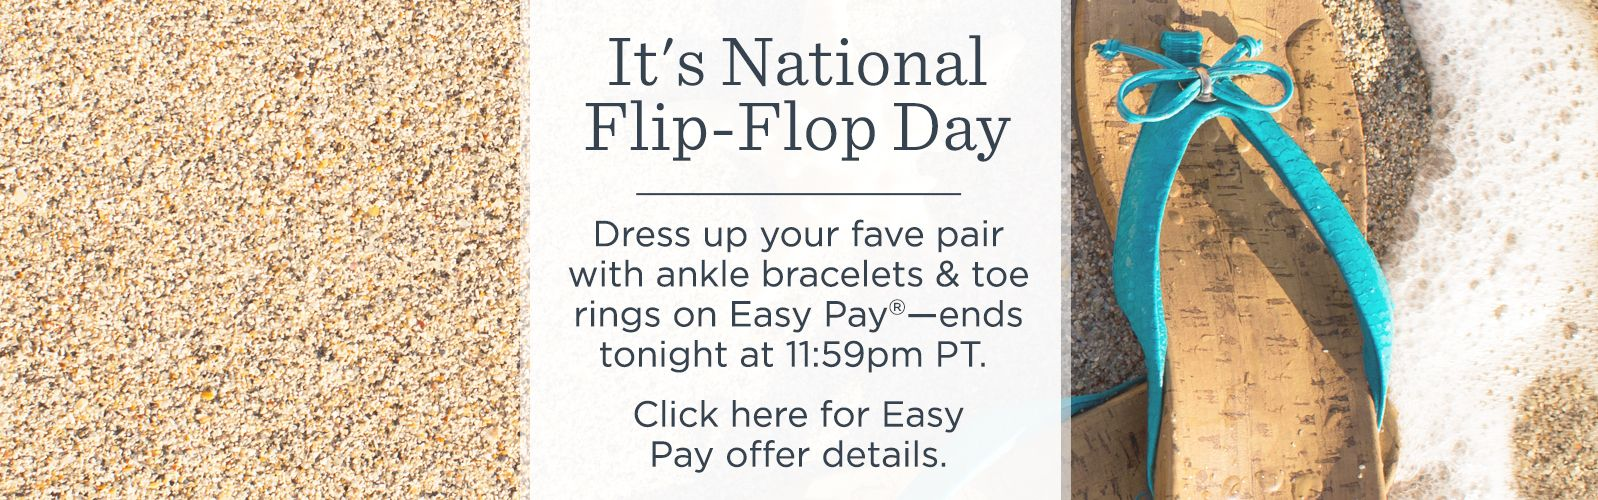 It's National Flip-Flop Day